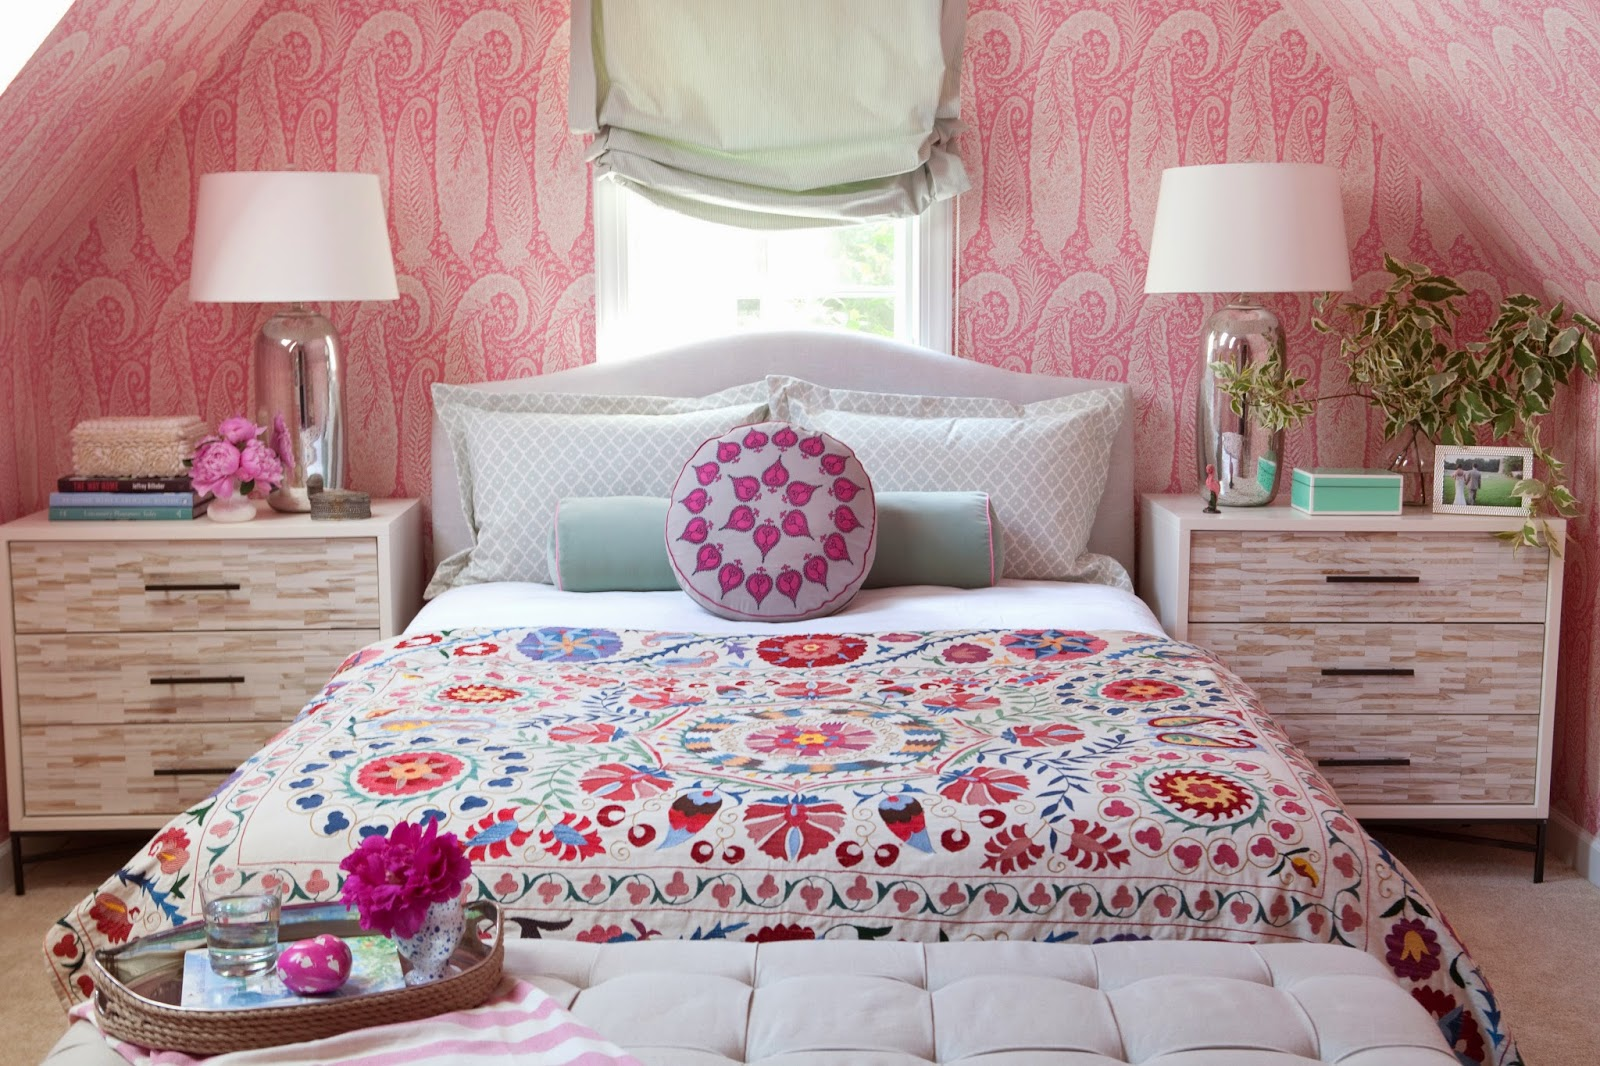 Marvelous Eclectic Bohemian Girl Room Ideas